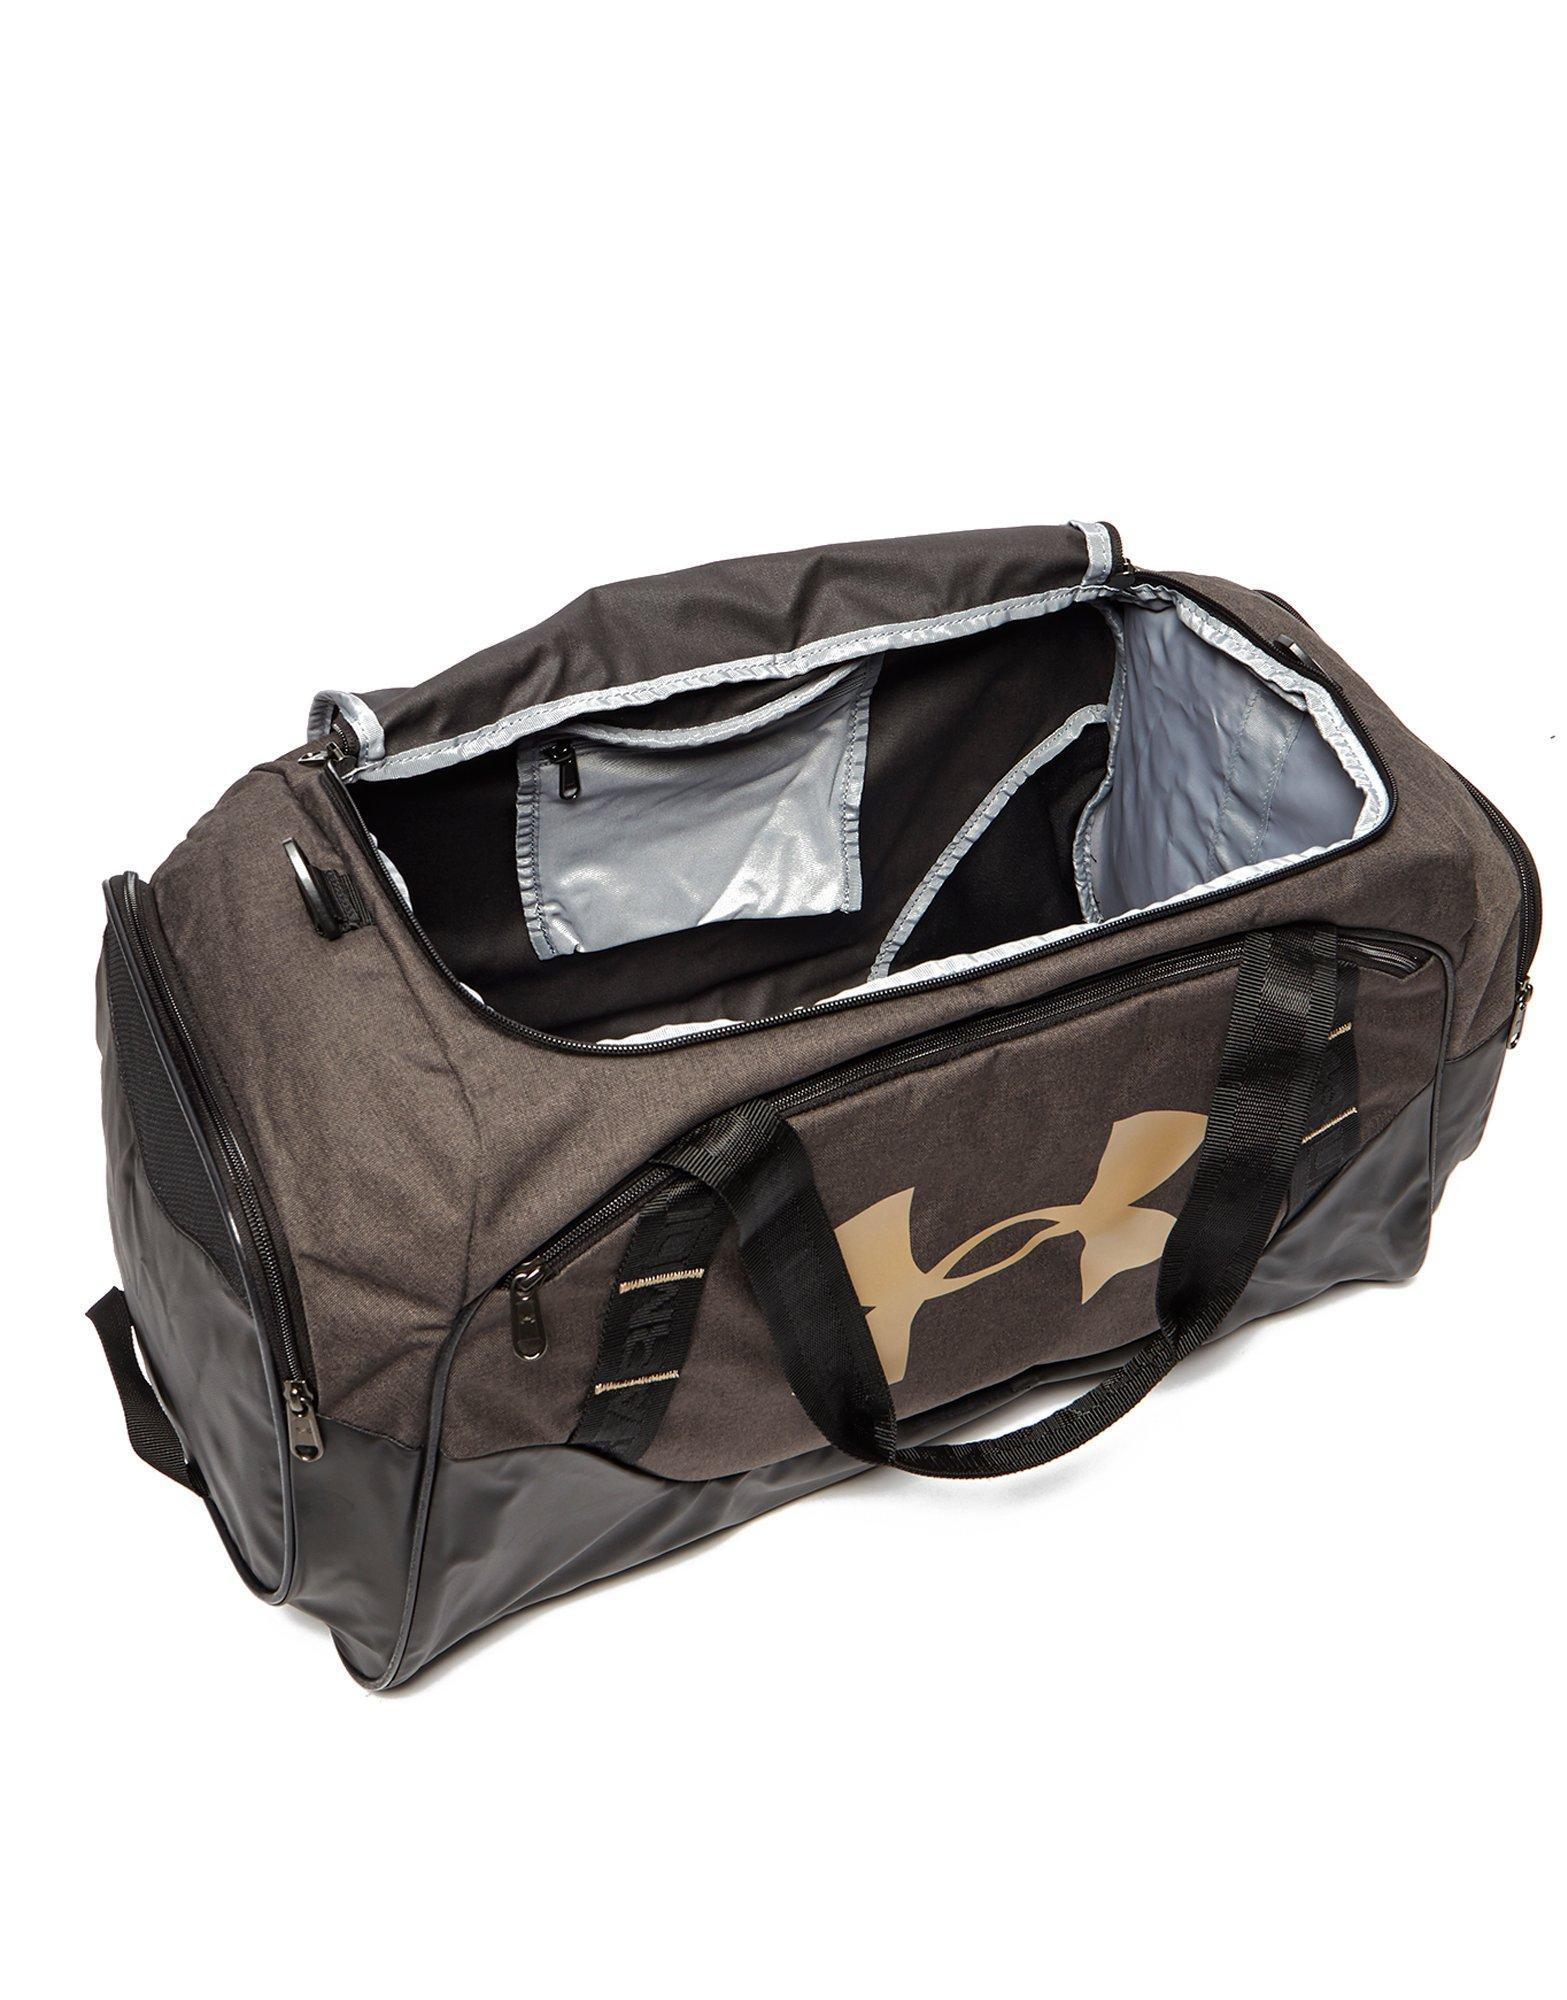 19f887f68a0861 Jd Sports Under Armour Bags | Building Materials Bargain Center